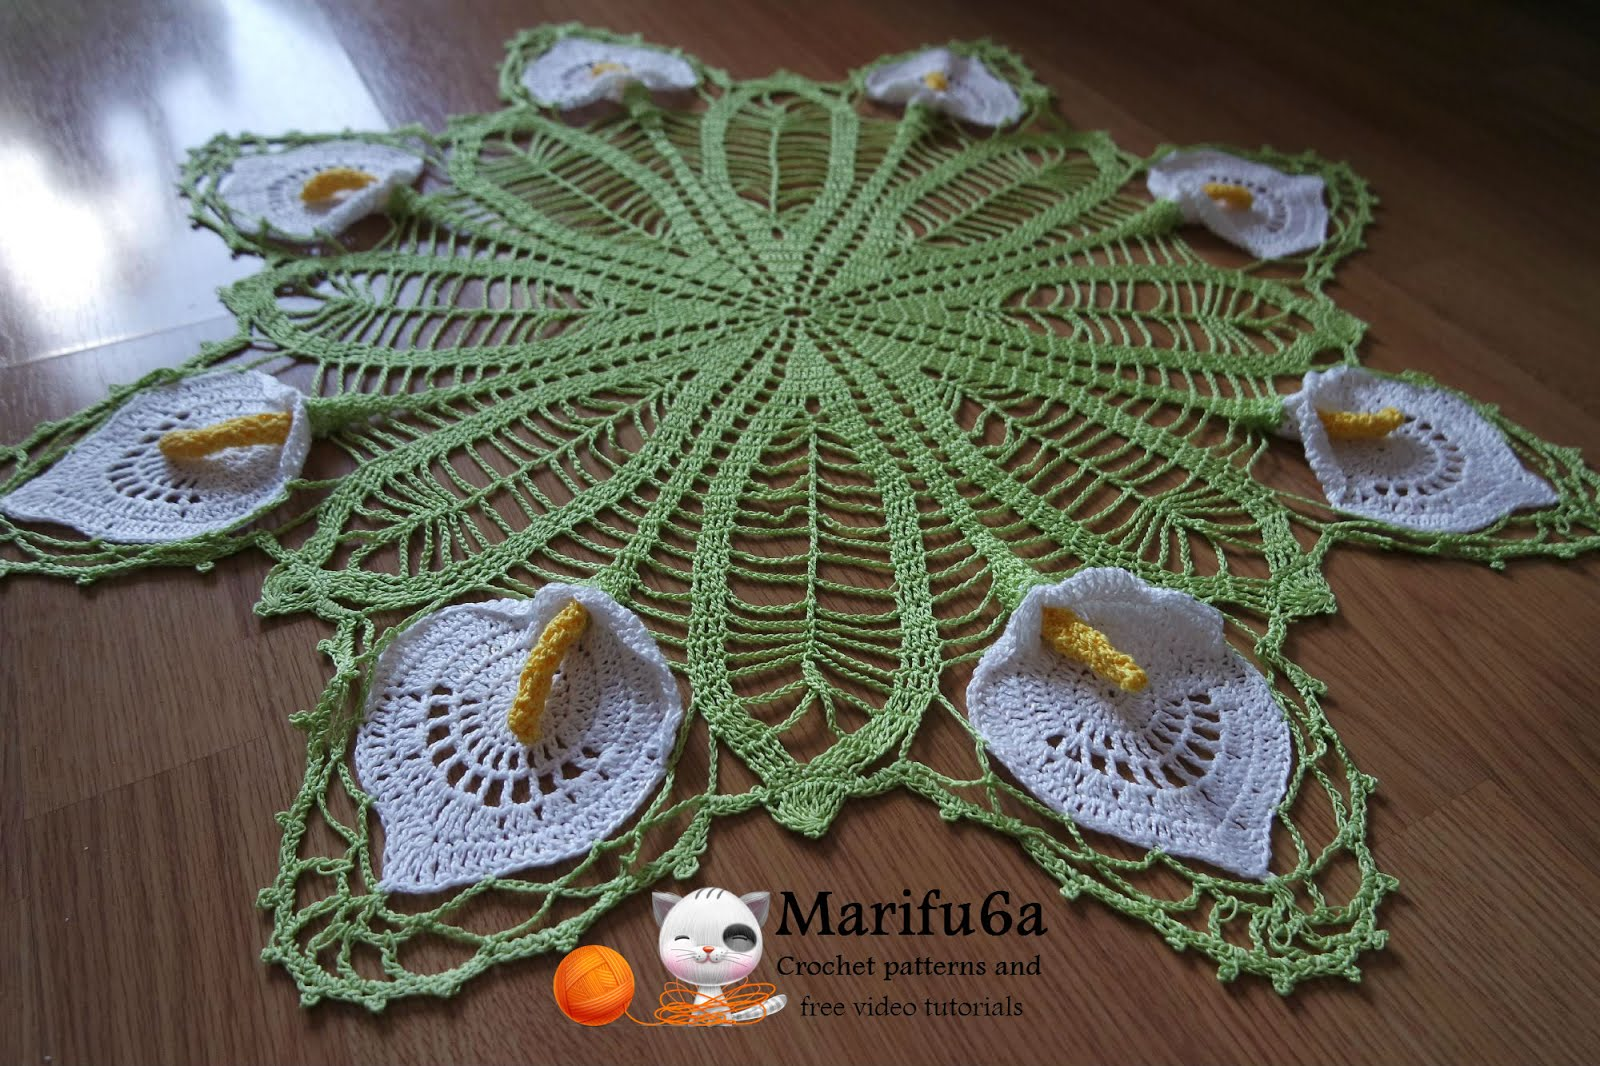 Crochet doily with Calla Lily pattern